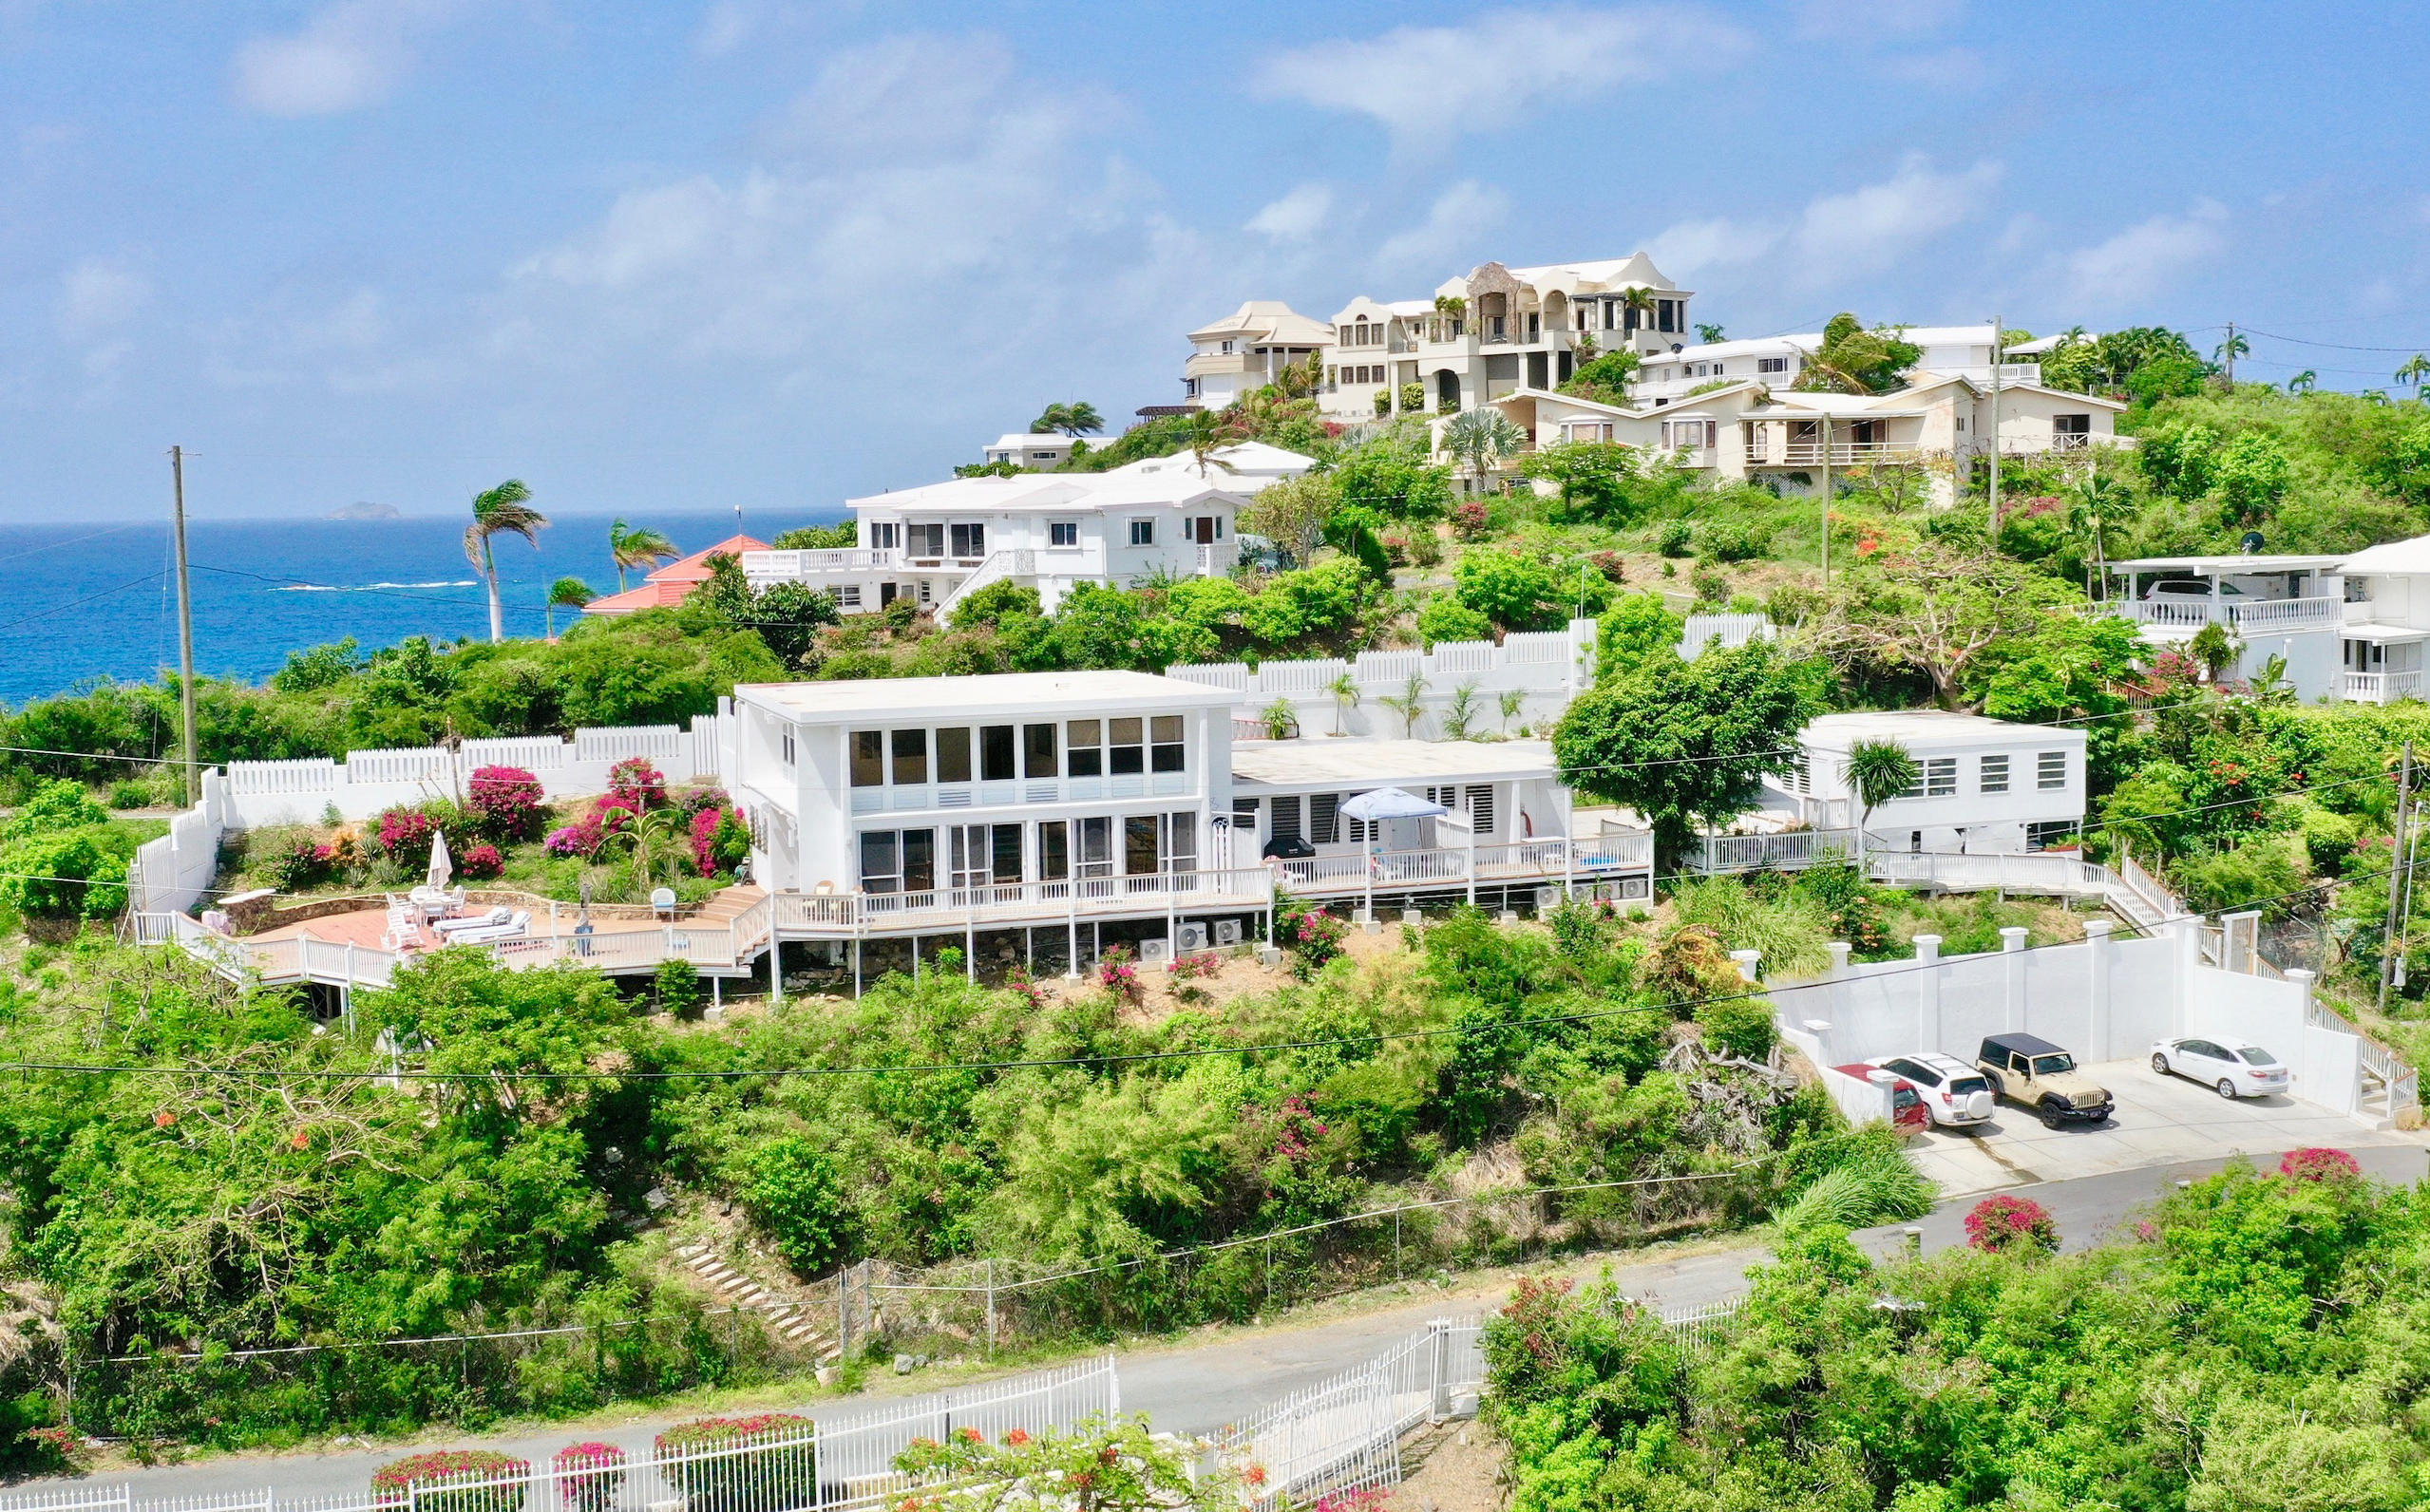 RE/MAX real estate, US Virgin Islands, Nazareth, New Listing  Residential  Nazareth RH